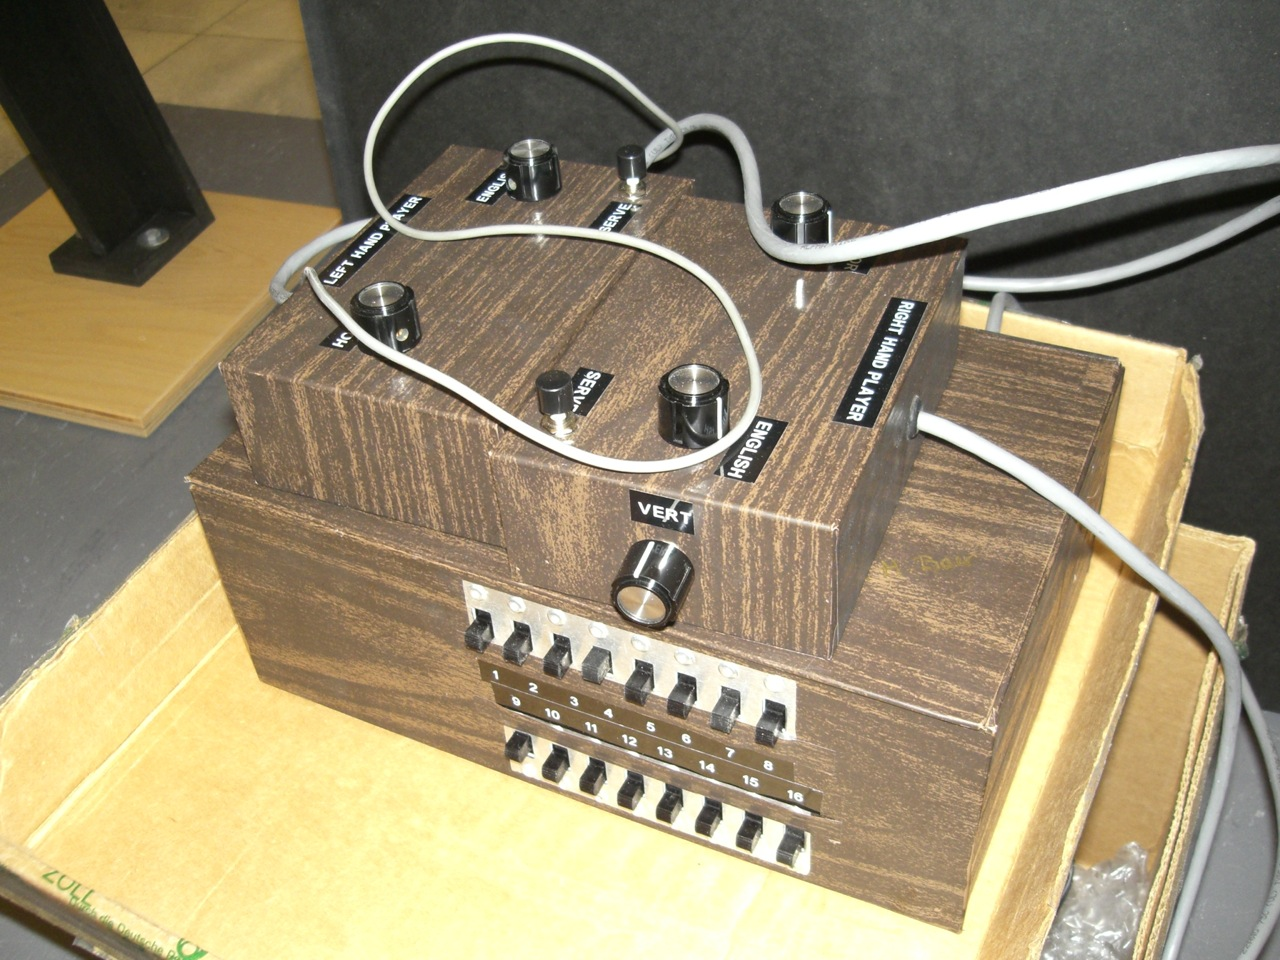 Ralph_Baer%27s_Brown_Box_prototype.jpg